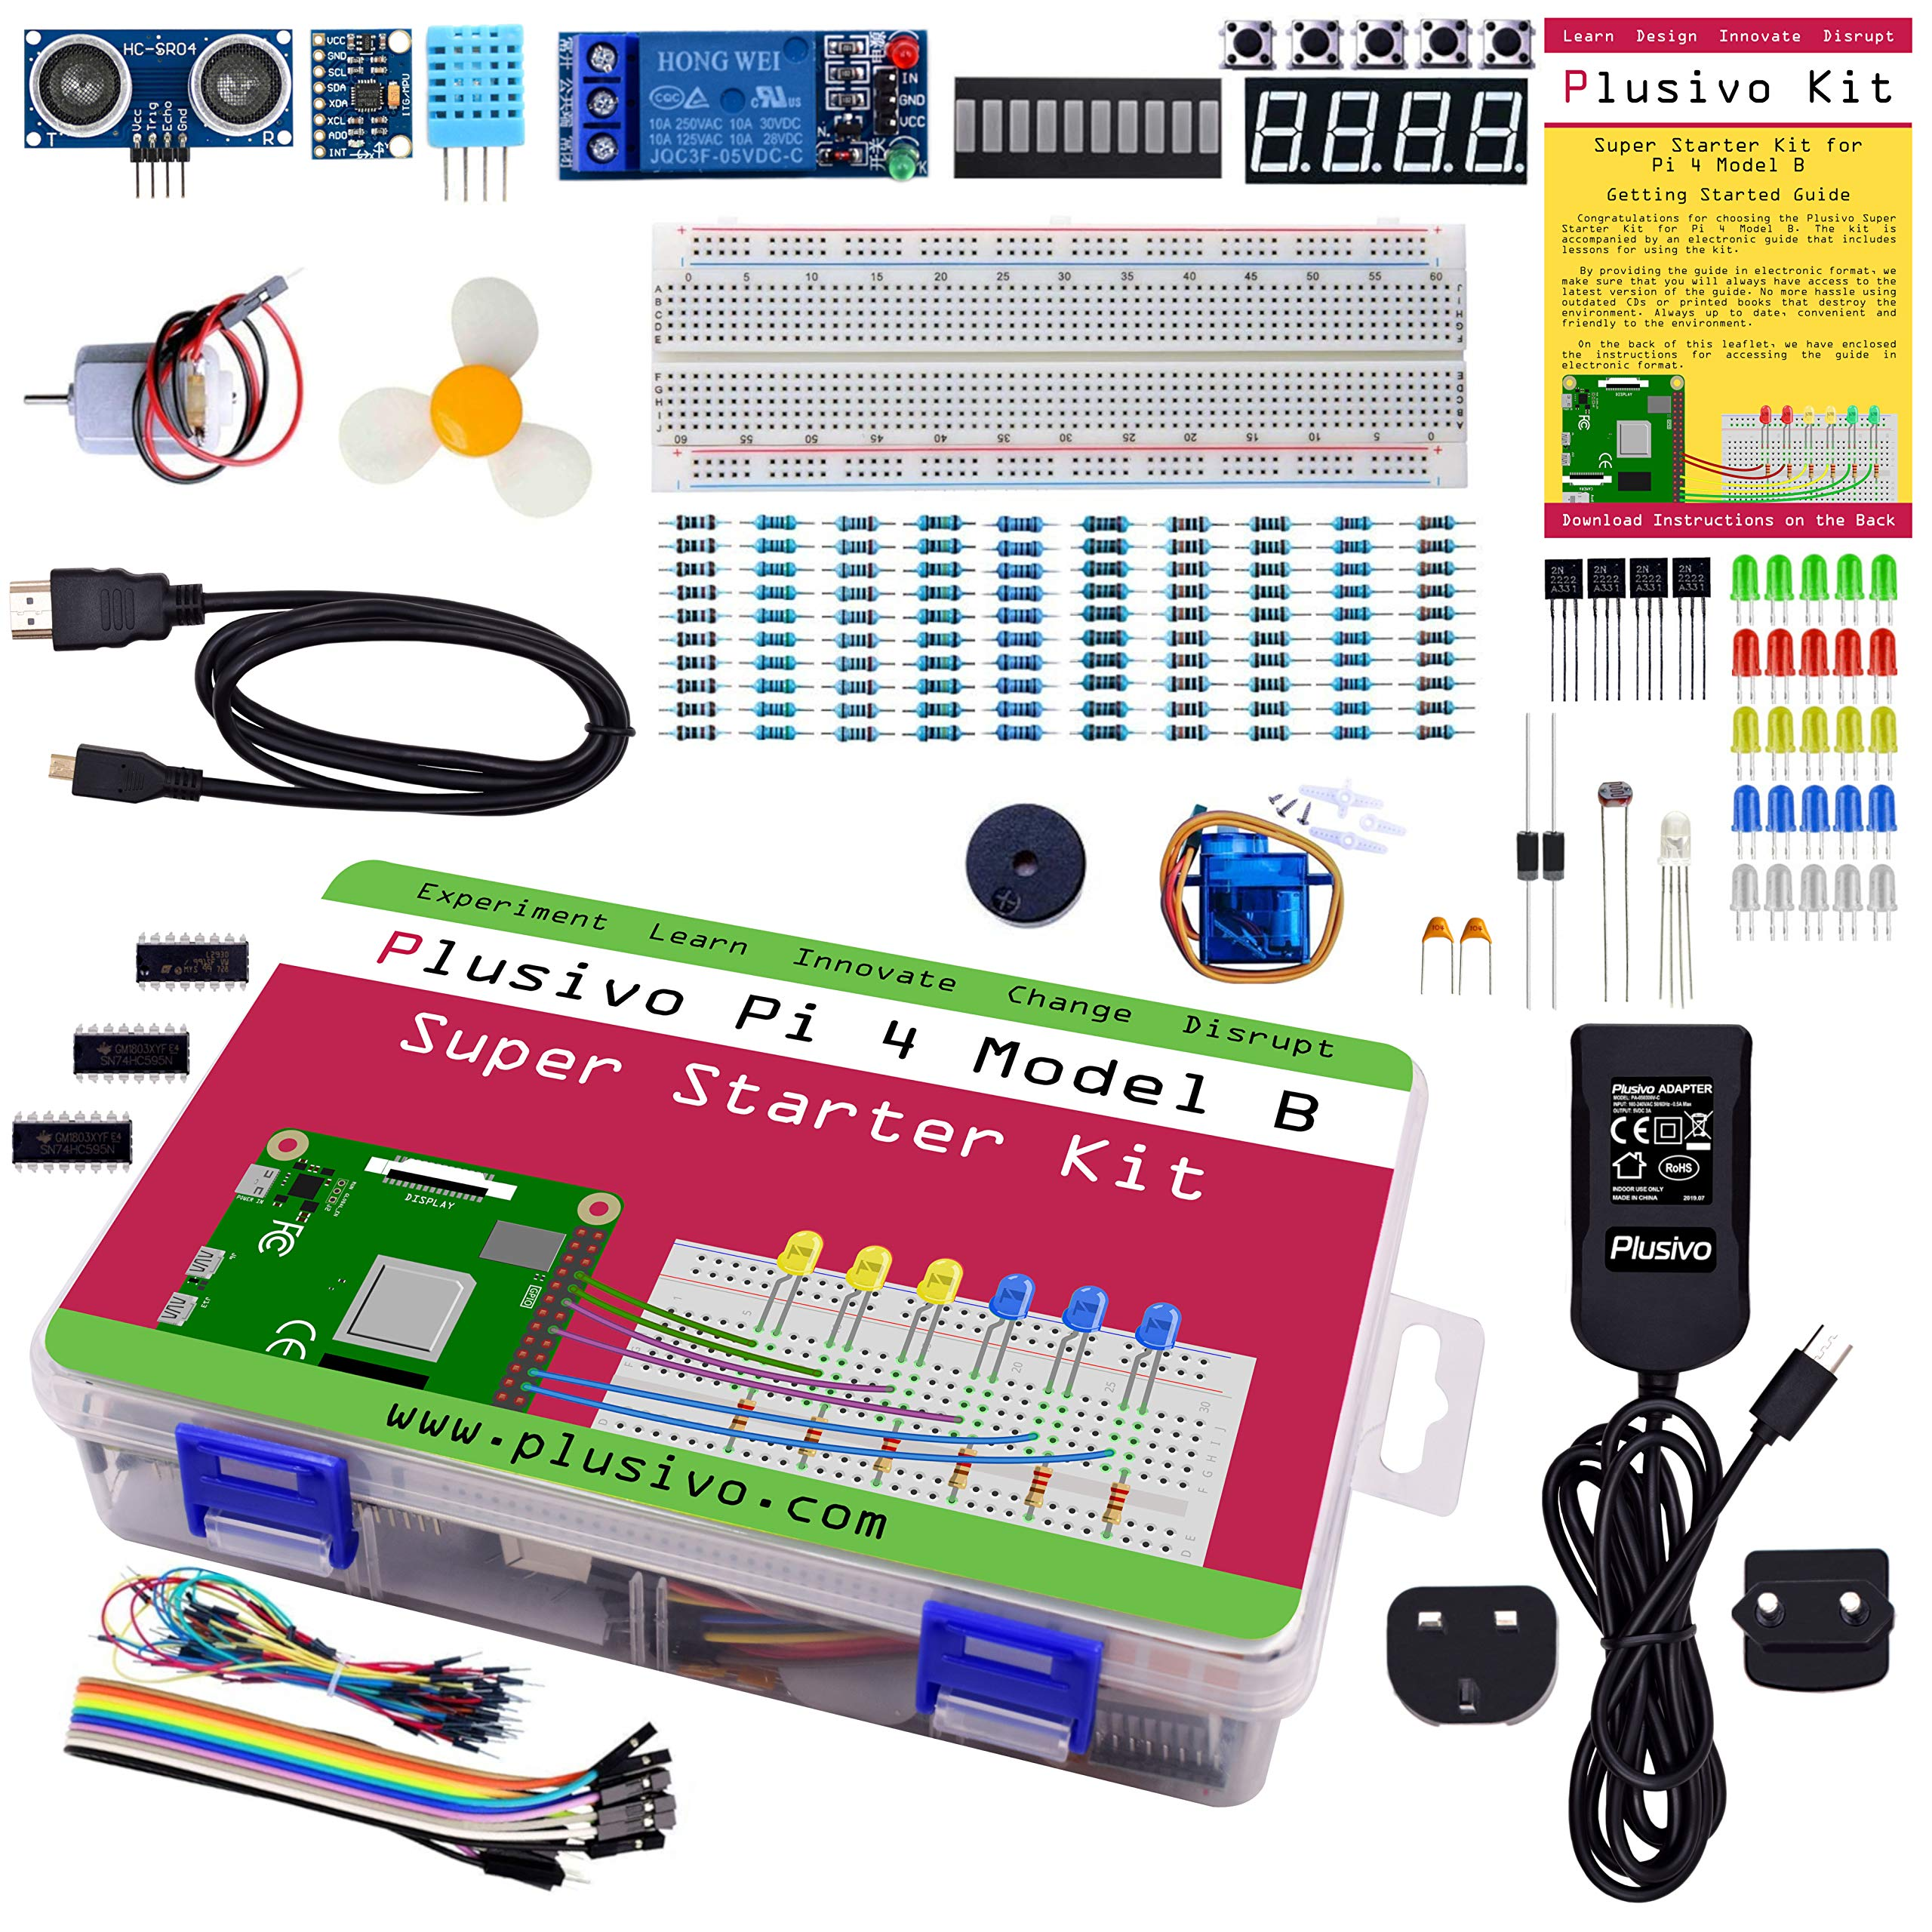 Plusivo Pi 4 Super Starter Kit compatible with Raspberry Pi 4, with 5.1V 3A Power Adapter and Detailed PDF Guide with Lessons and Tutorials